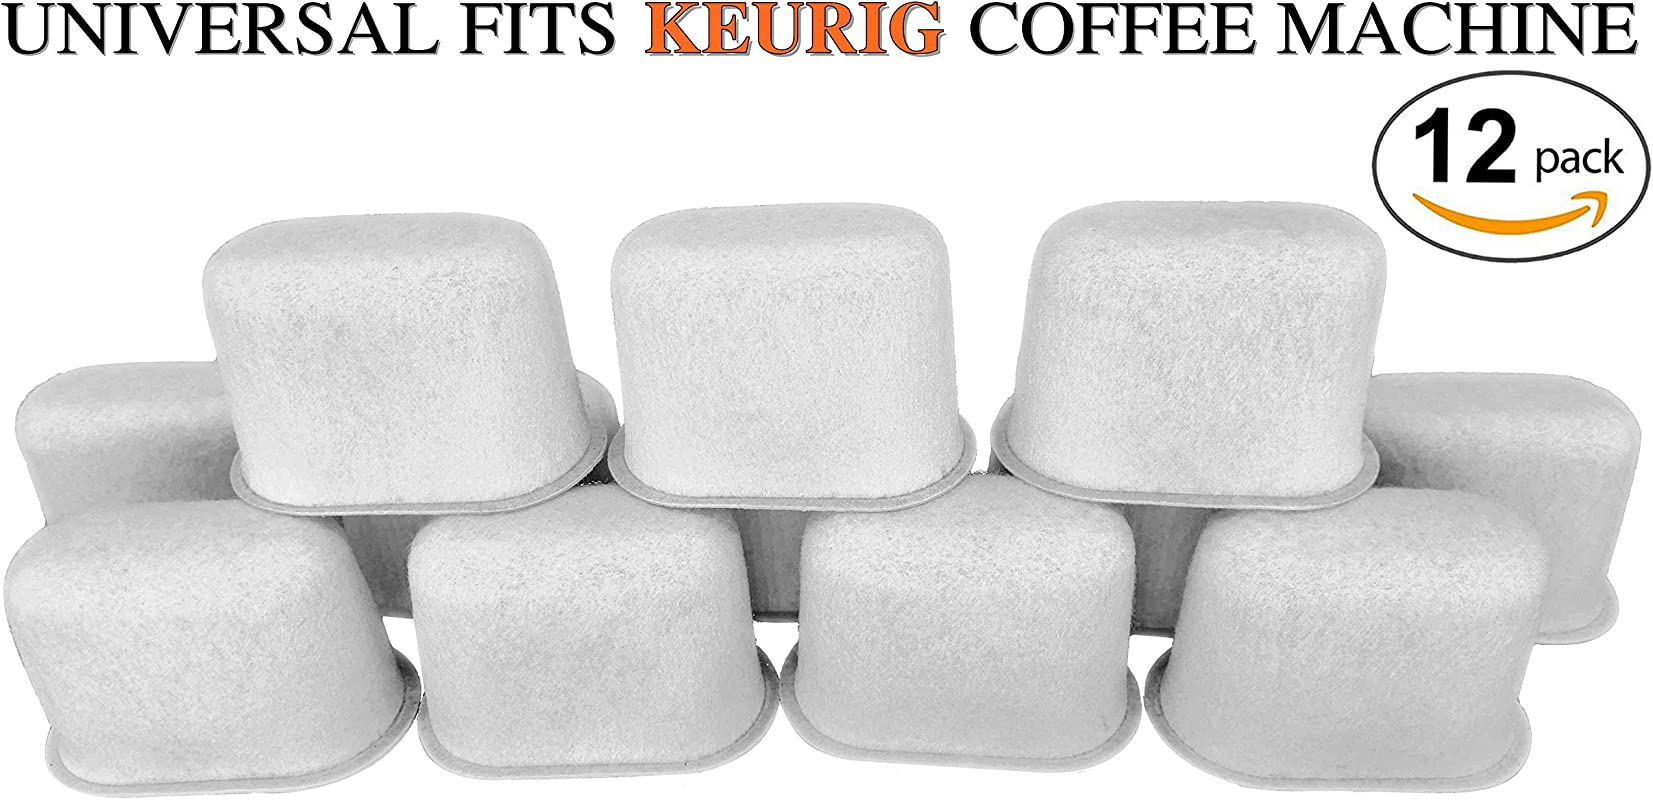 Keurig Compatible Replacement Charcoal Water Filters For Coffee Makers Fits Keurig Coffee Makers 12 Pack